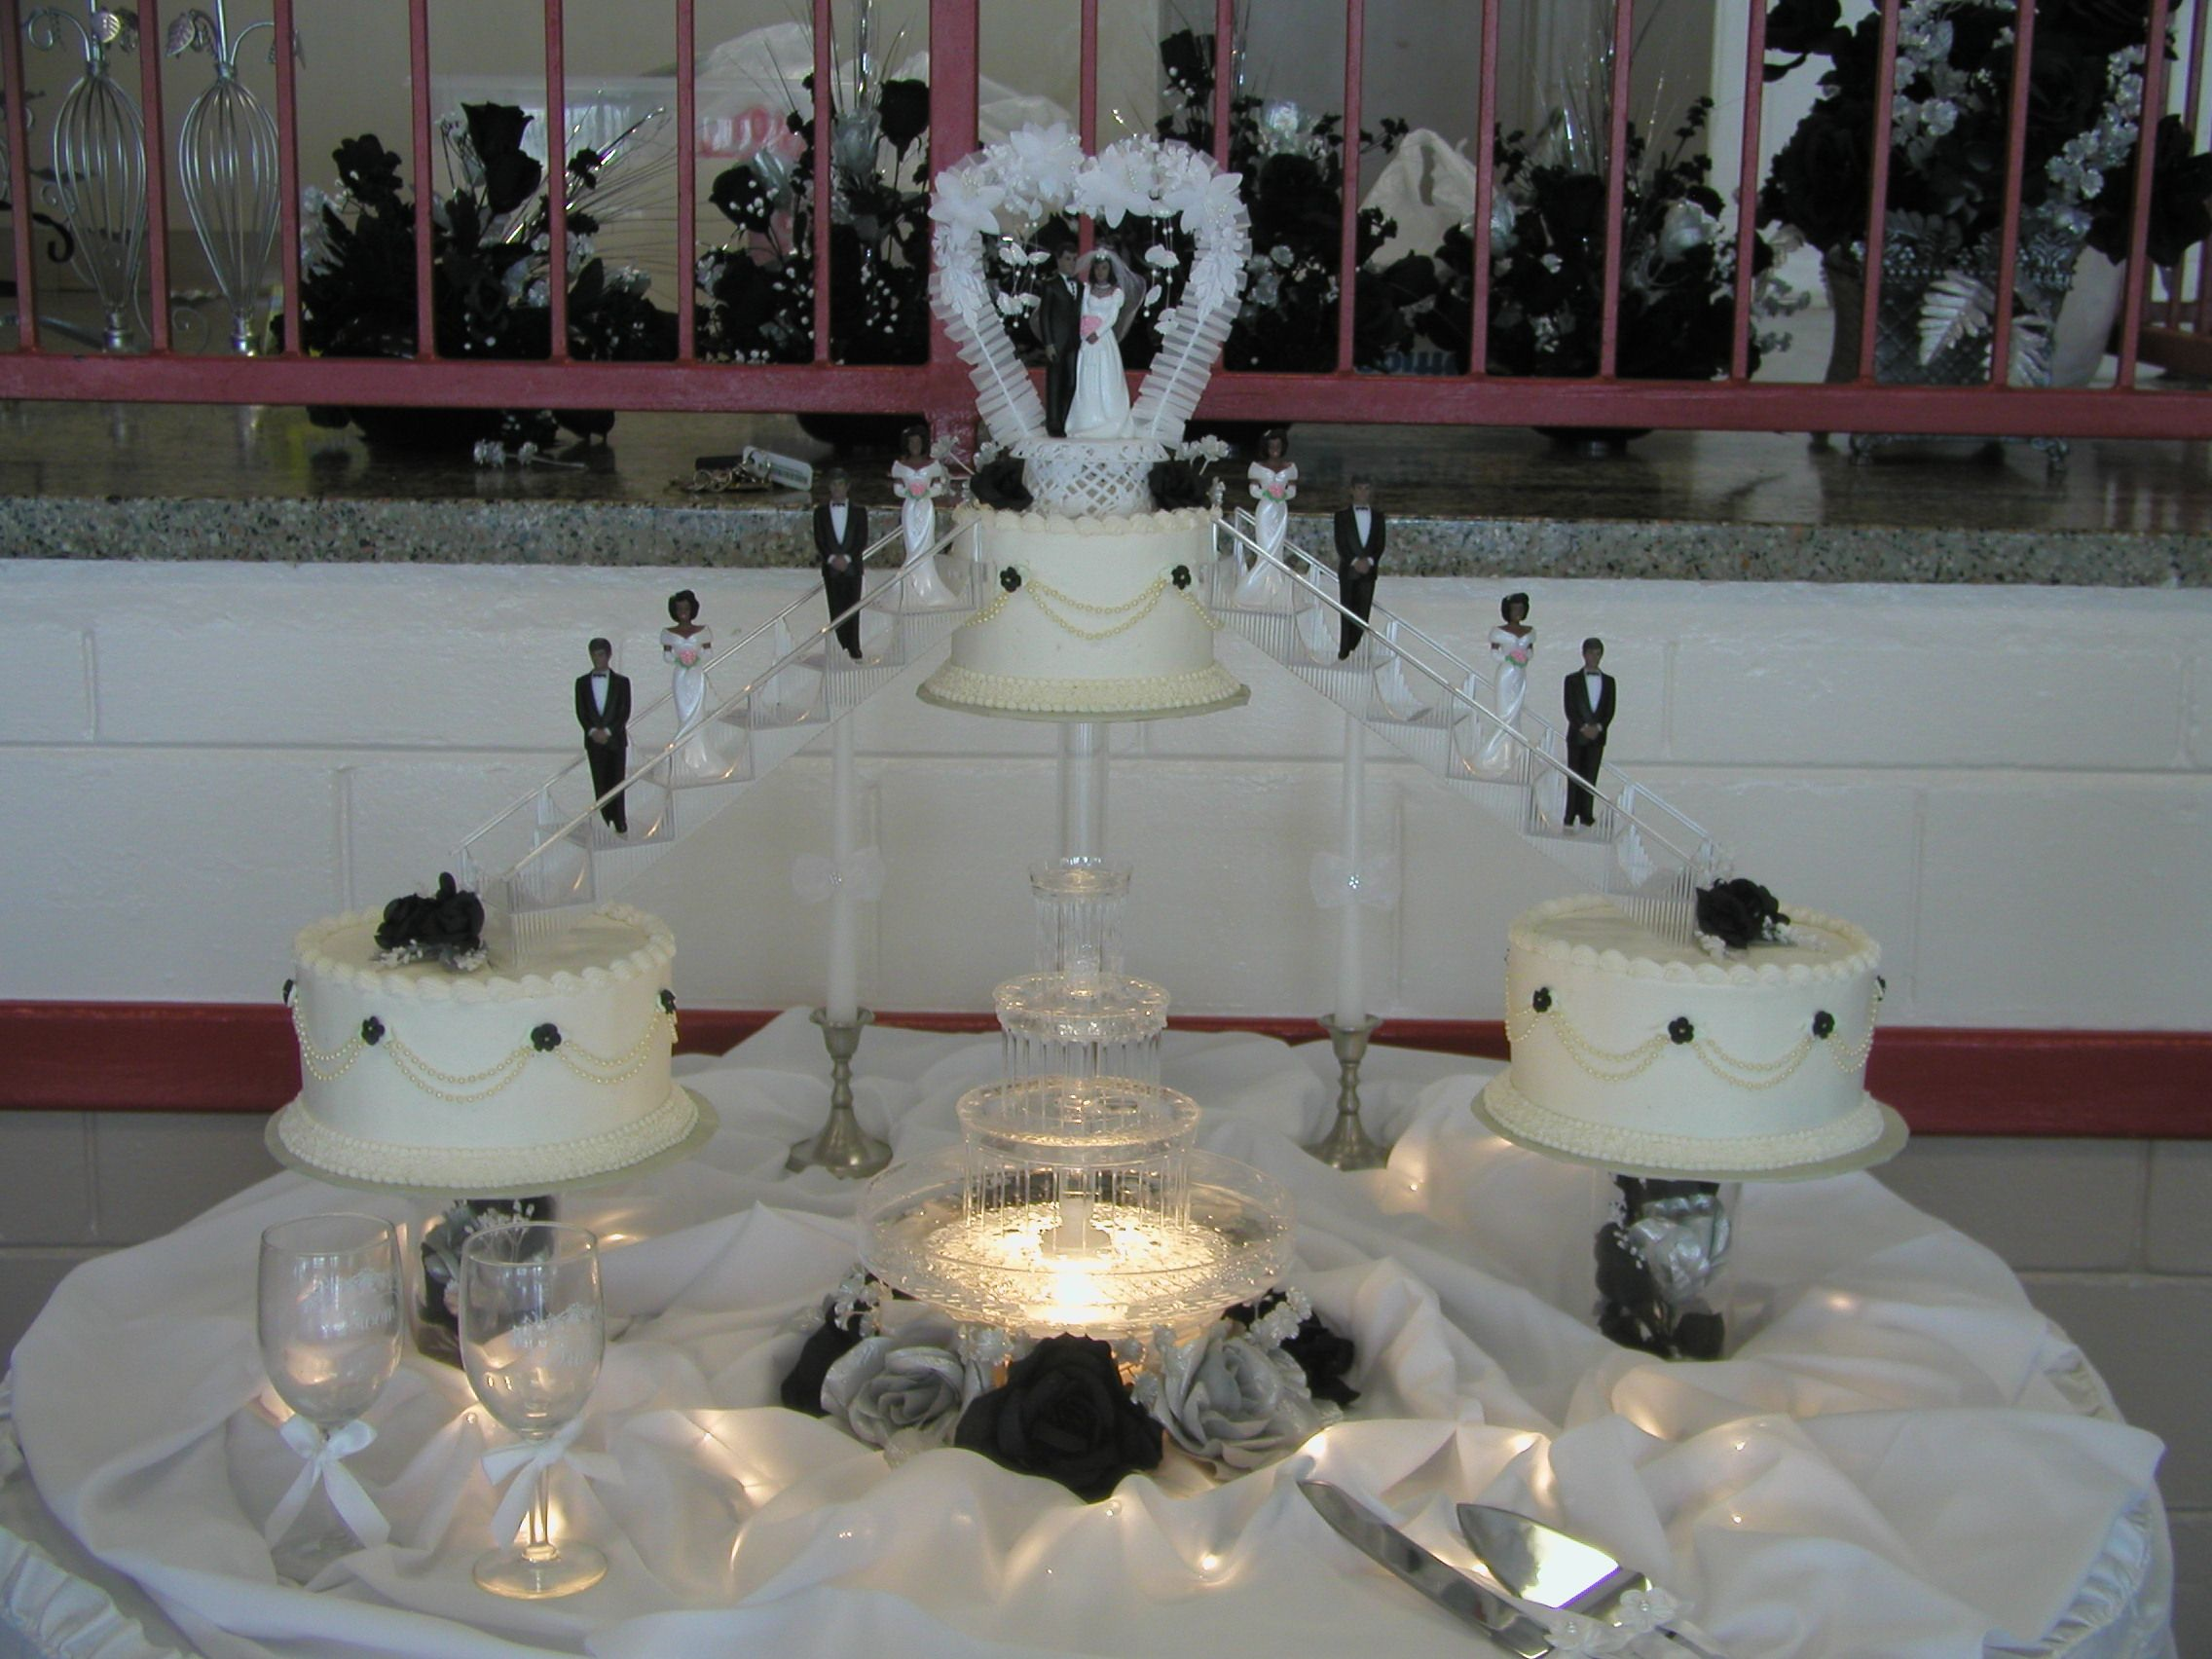 black, white and silver wedding cake, stairs, cake fountain